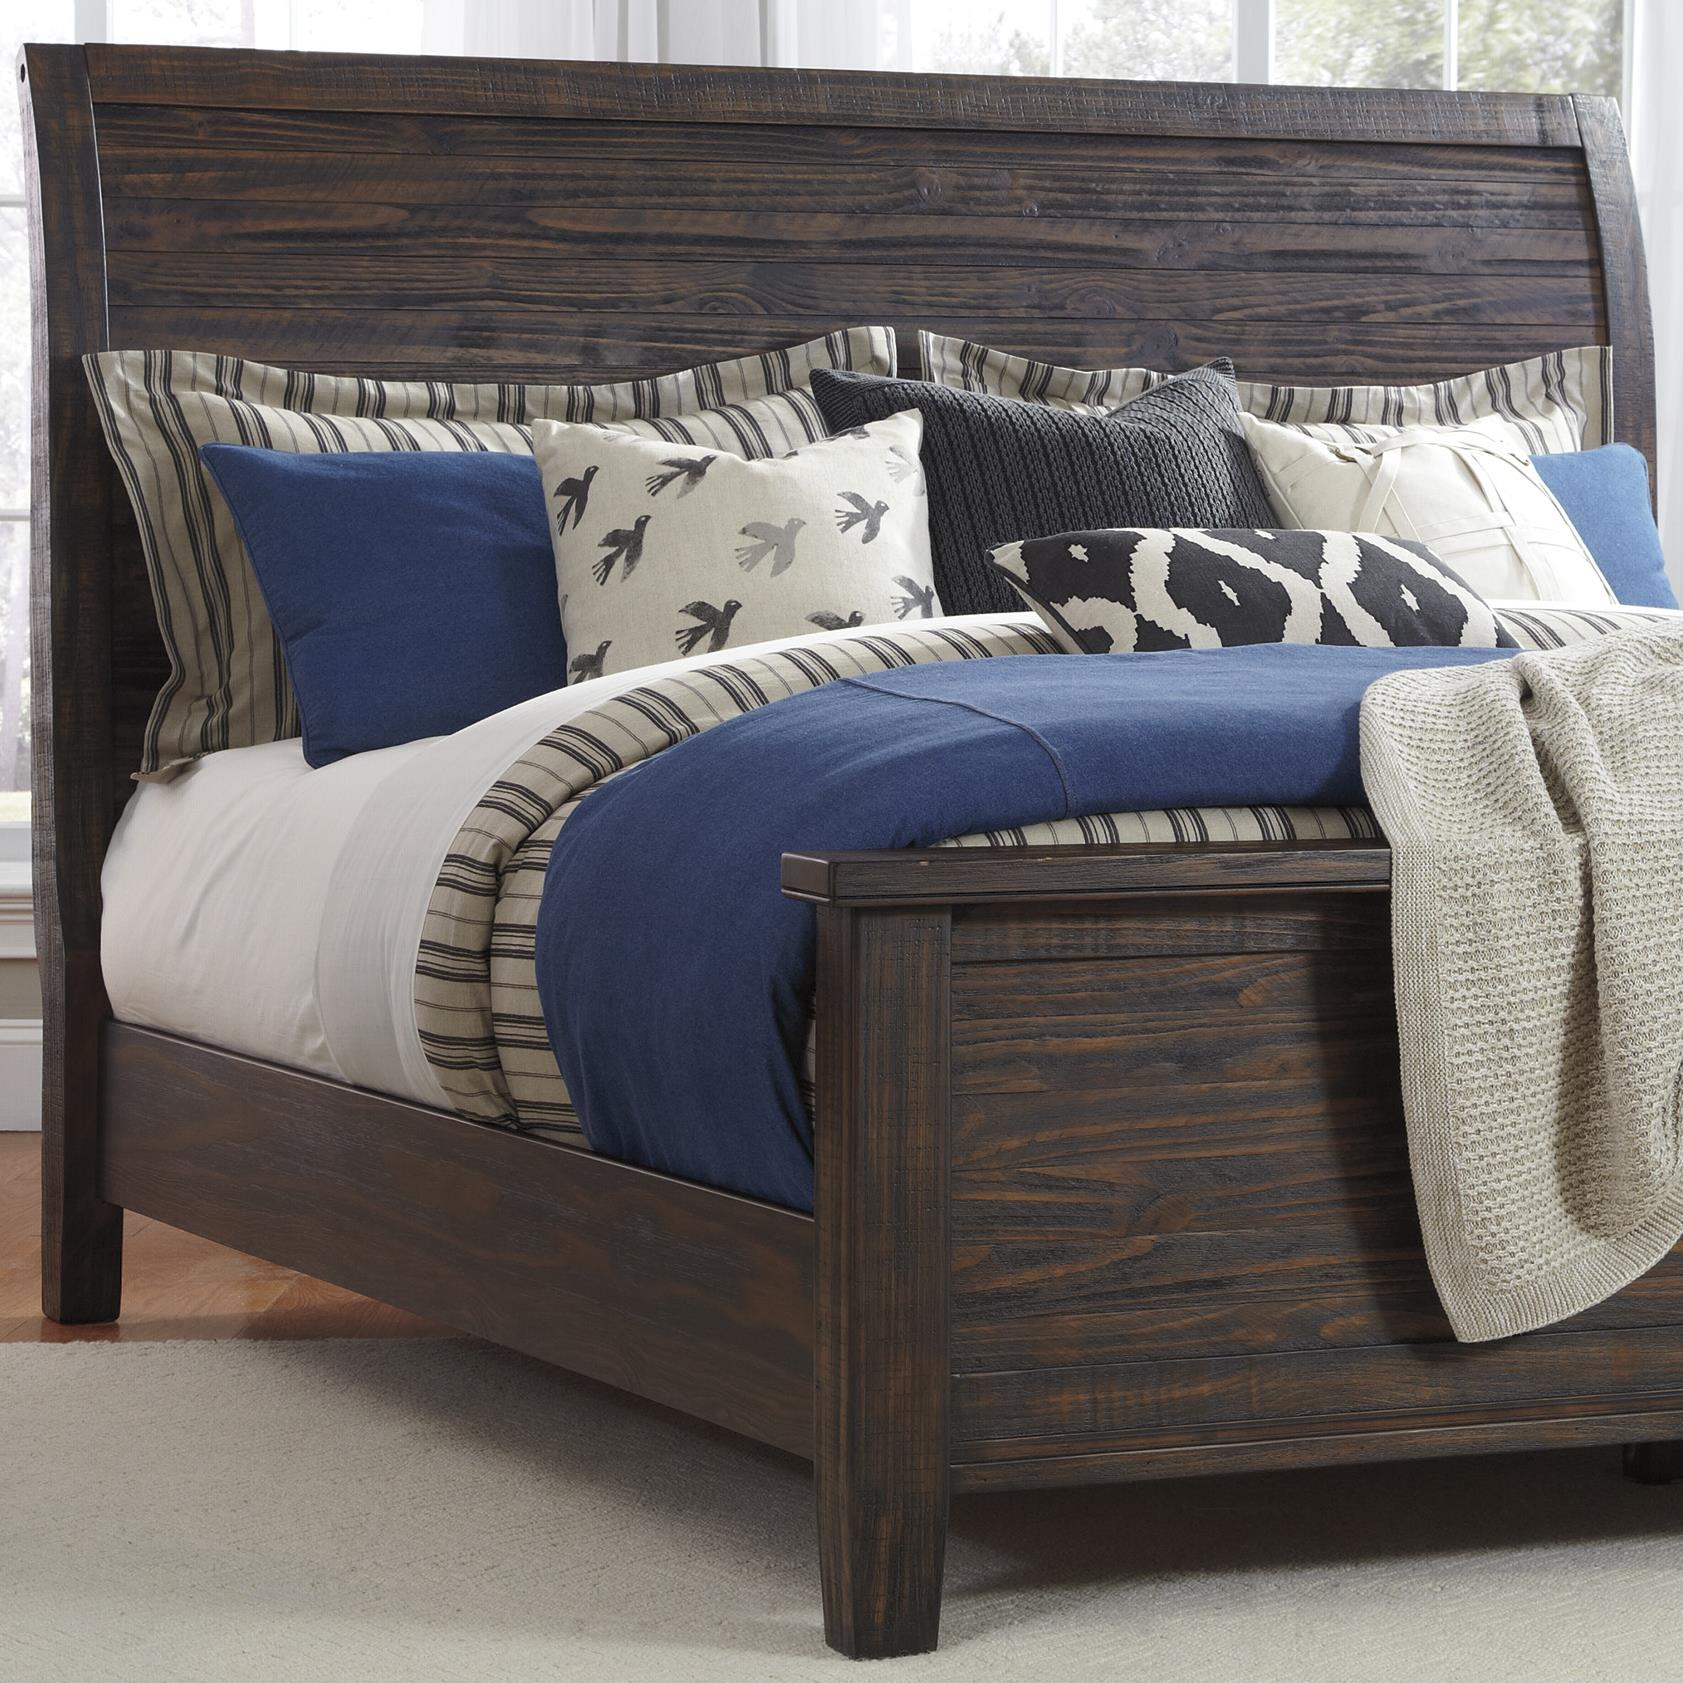 Signature Design by Ashley Trudell Queen Panel Headboard - Item Number: B658-57